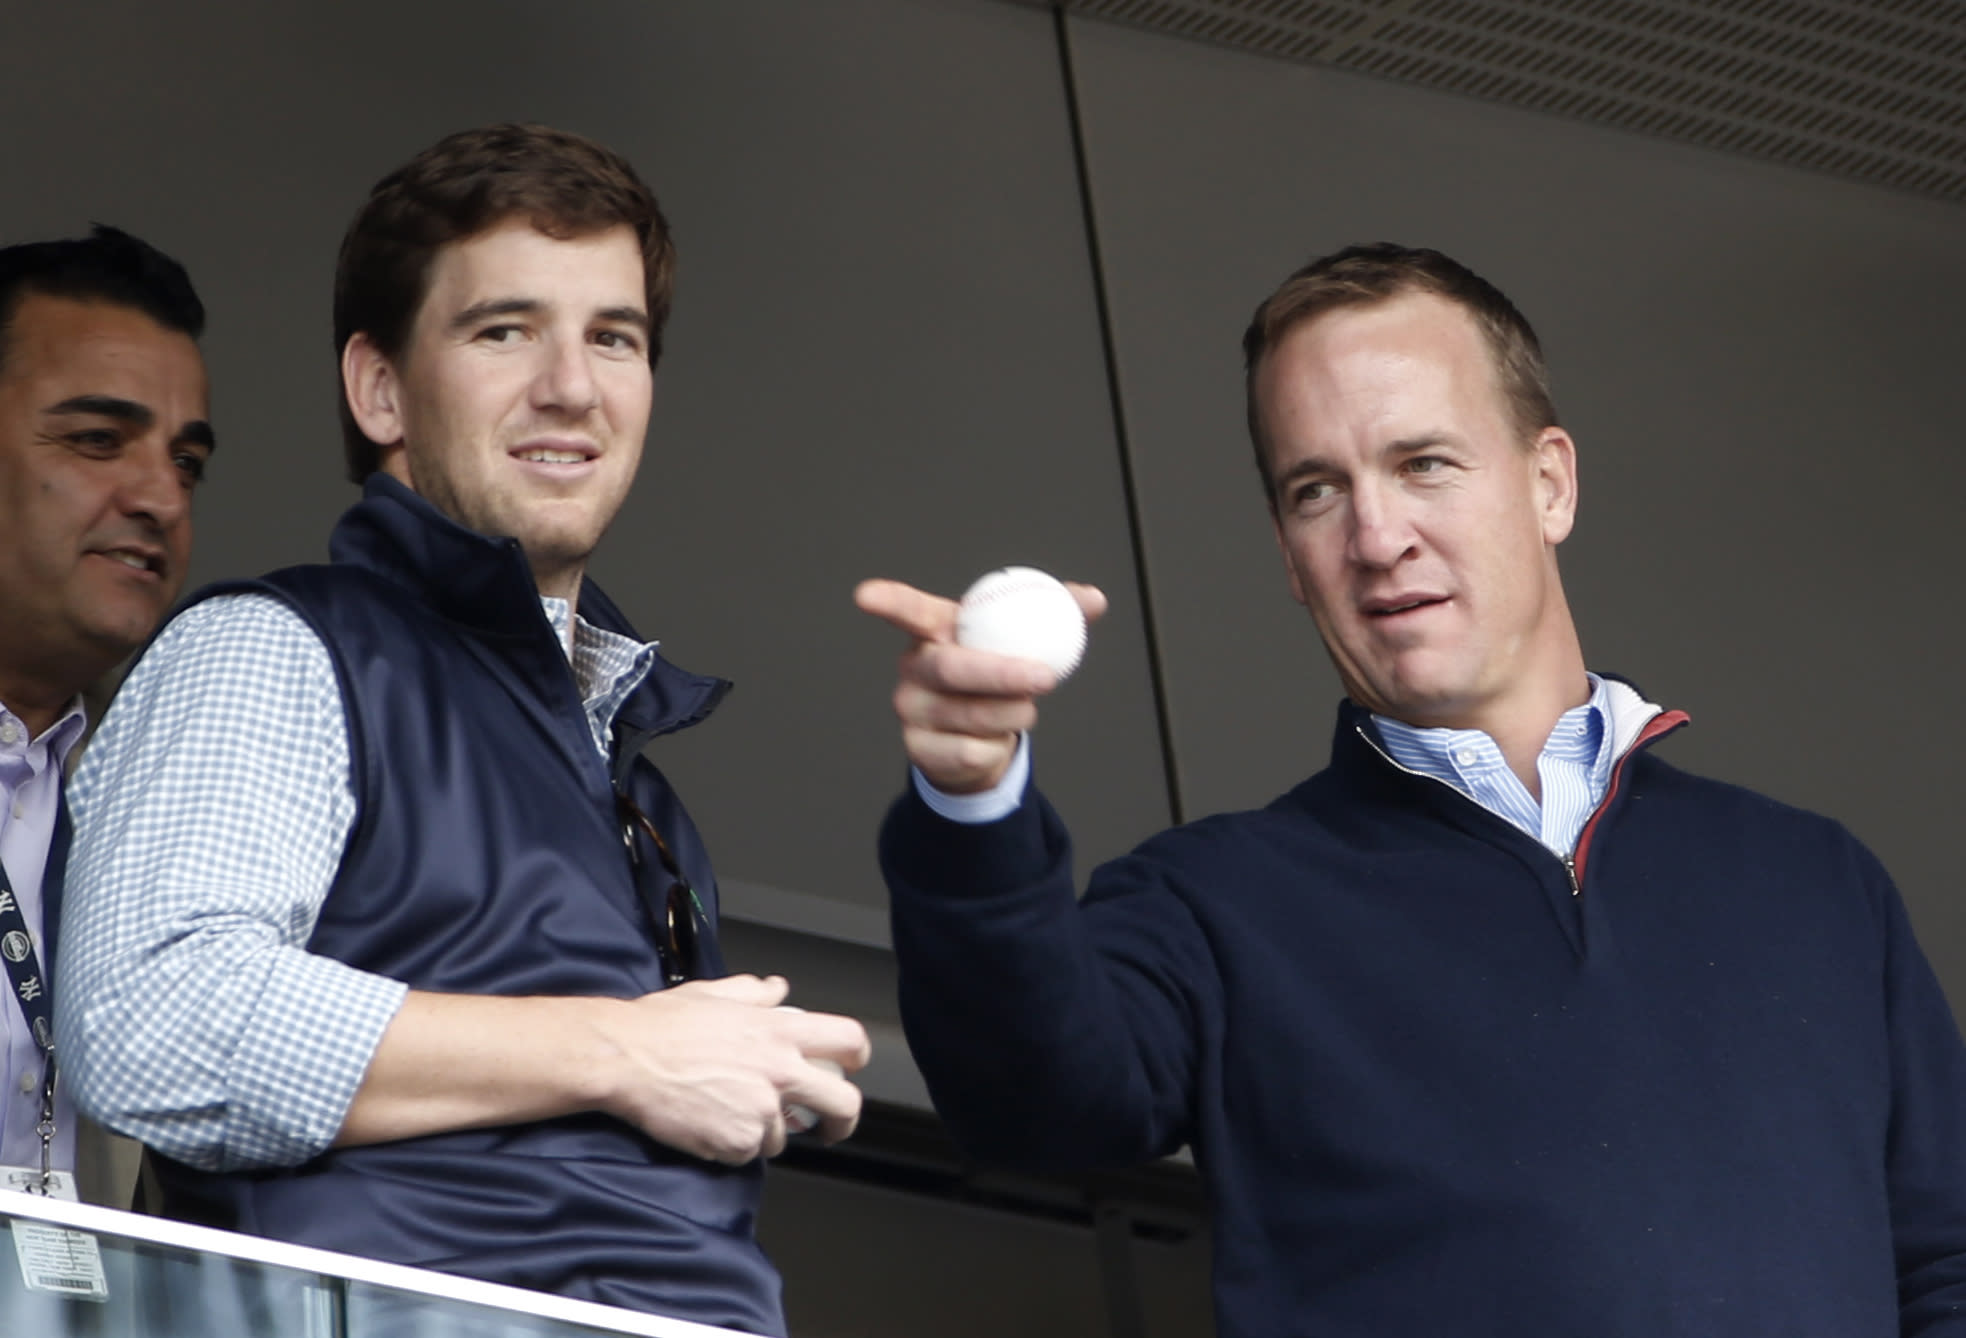 Peyton Manning has a little fun with little brother Eli